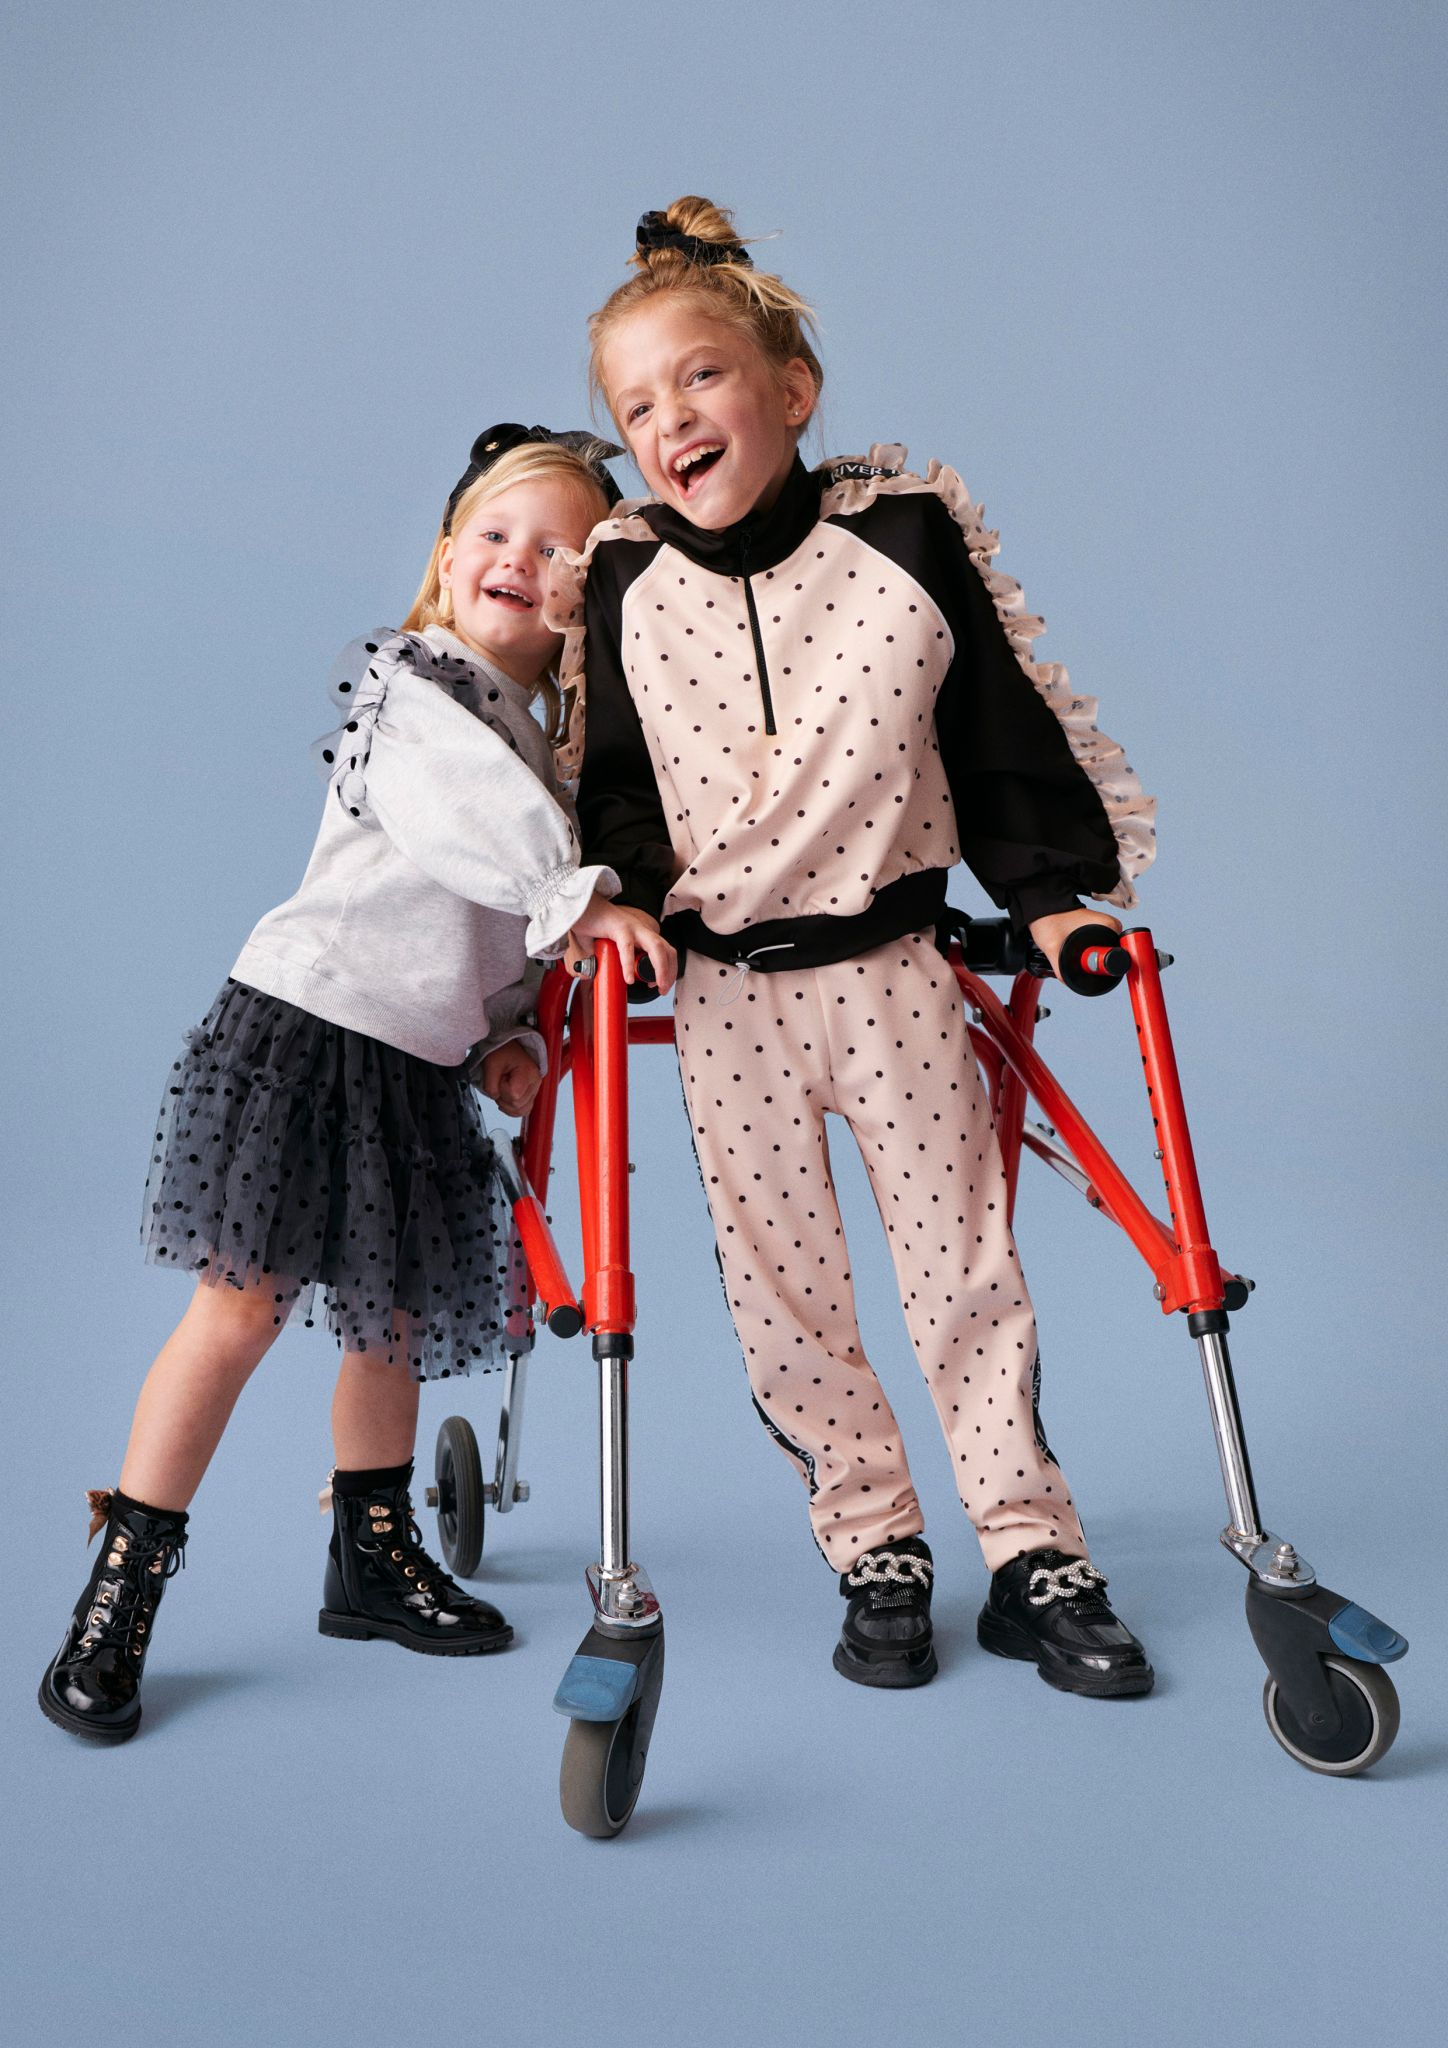 Two young girls modeling River Island's children collection for Autumn stood side by side with one girl using a walking aid